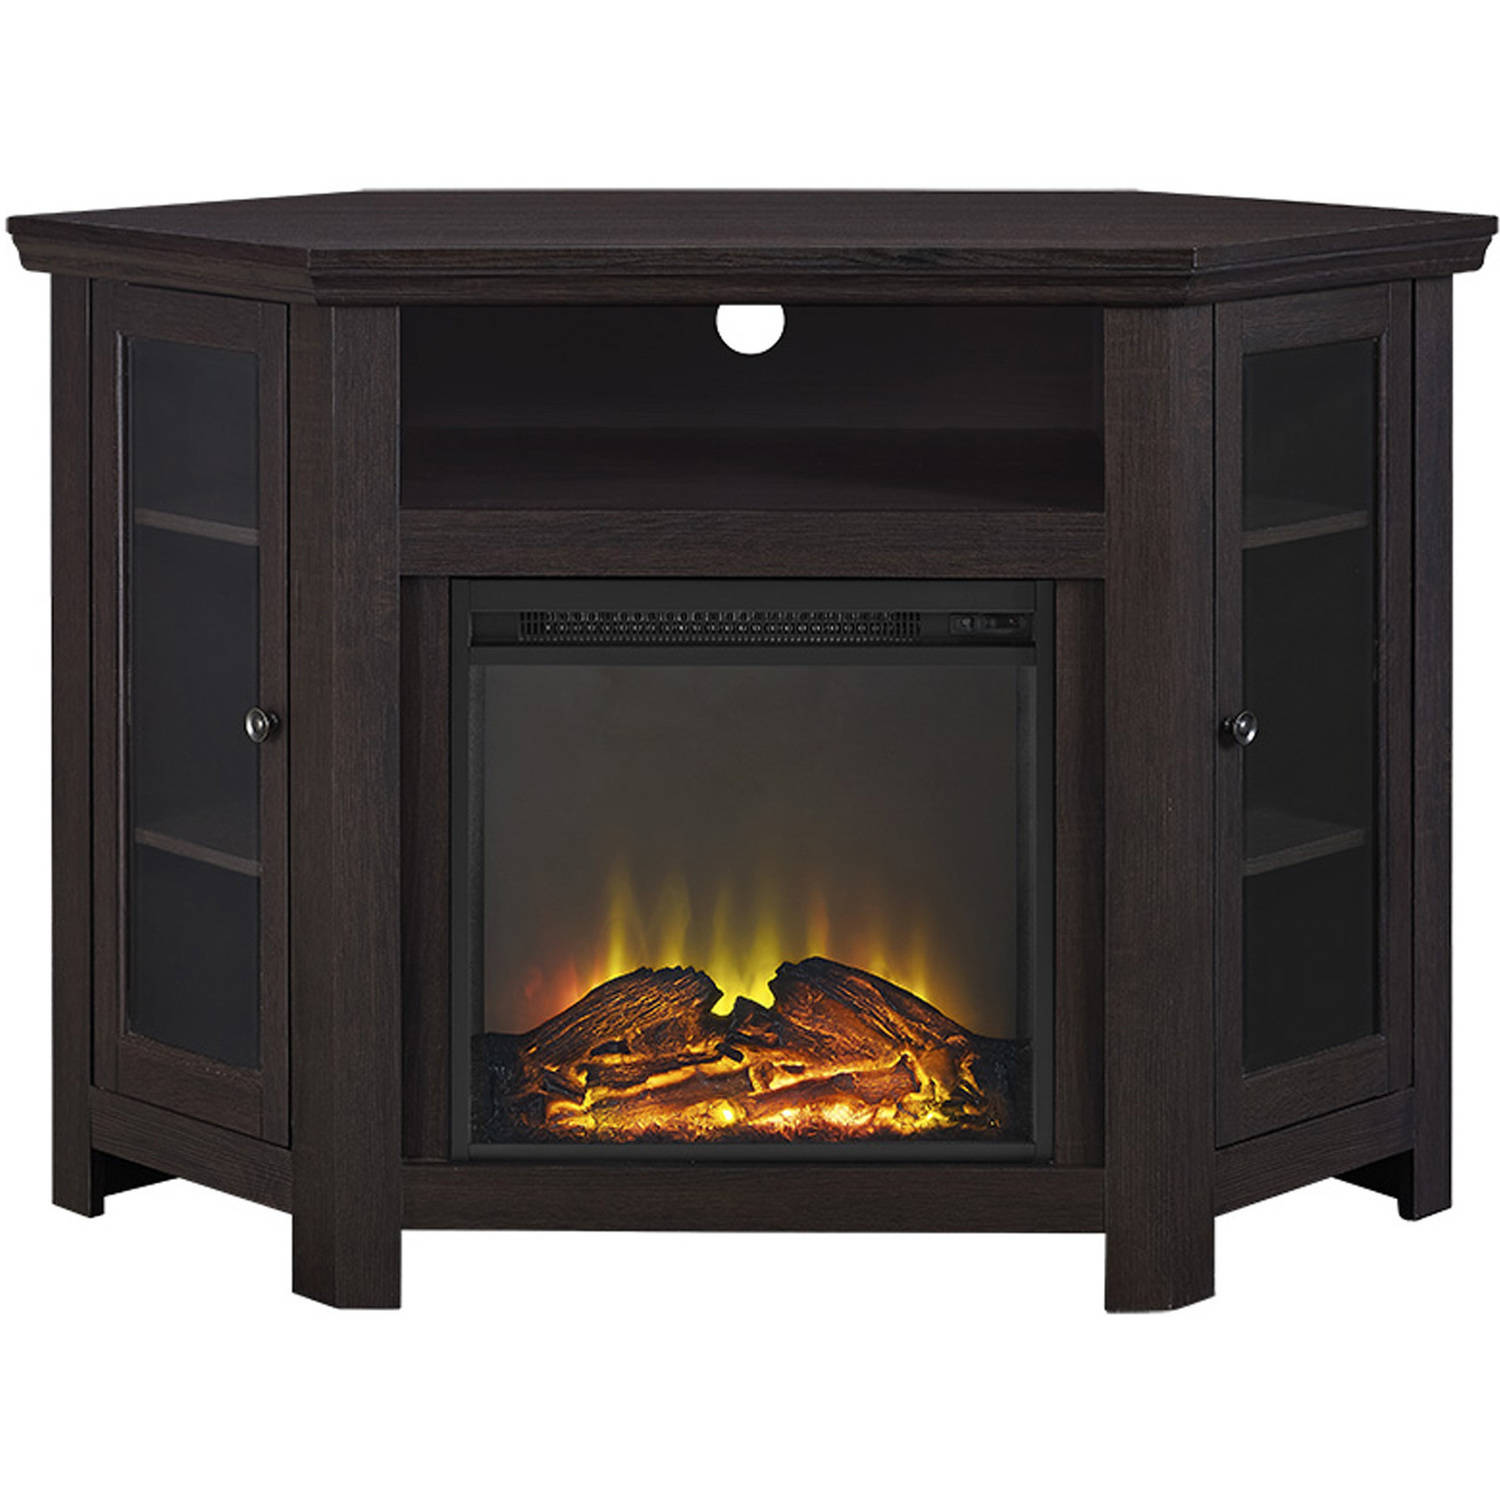 wood corner tv fireplace tv stand for tvs up to 52 quot multiple finishes walmart